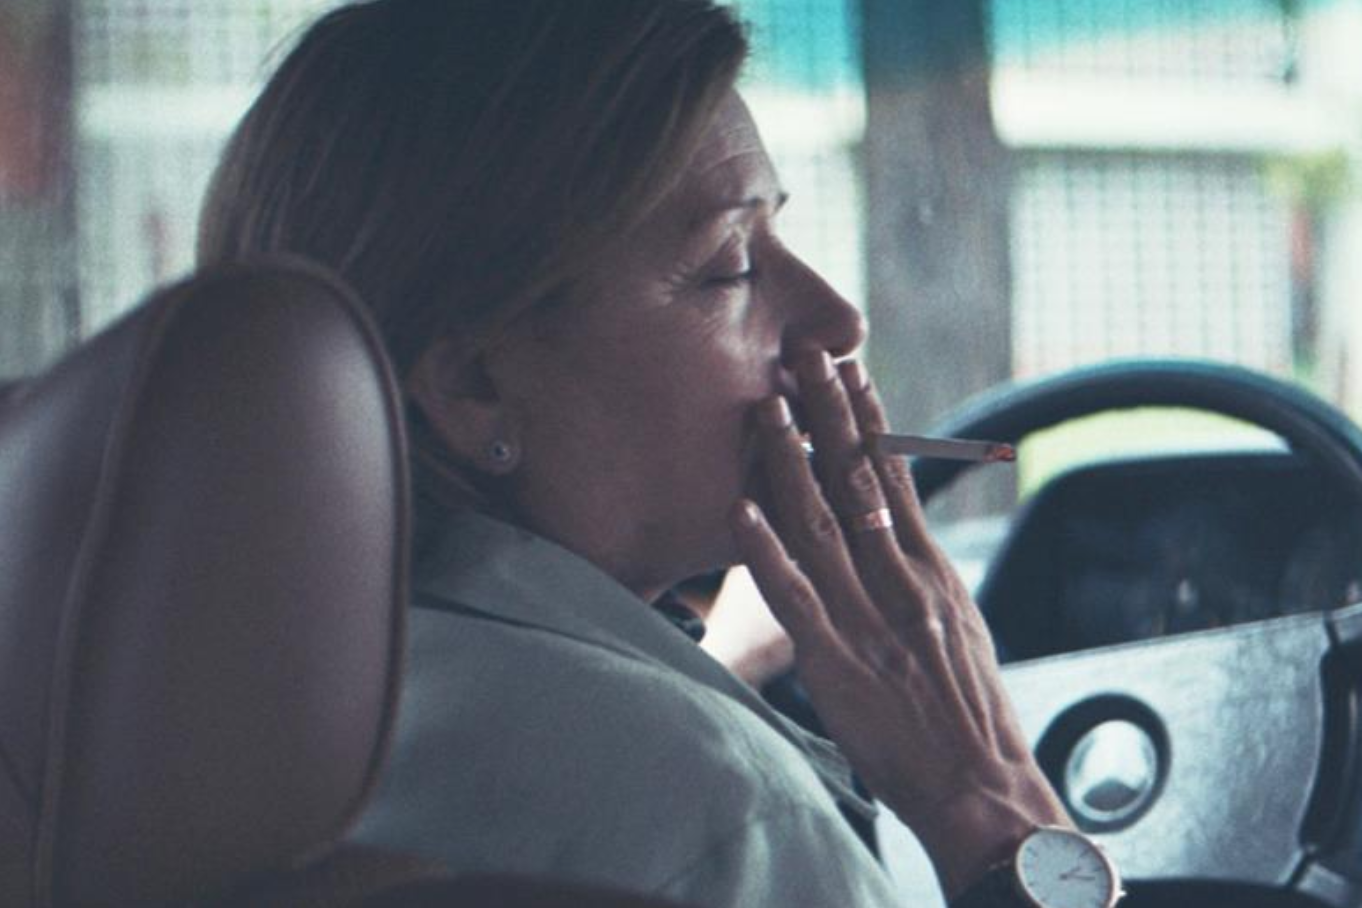 'Las Herederas' (The Heiresses) directed by Marcelo Martinessi    Las Herederas is a true gem of independent filmmaking. The story overflows with strong women, each represented in their very own particular way. It centers around an aged lesbian couple (Chiquita and Chela), both from wealthy families that have to start selling off their belongings when funds become scarce. But while not even a stint in prison can quench the outgoing Chiquita's lust for life, the introvert Chela struggles mightily with their dilemma. Slowly, she starts to accept the challenge of being temporarily on her own and after meeting the young and vibrant Angy, she outright embraces her new situation. The film strikes a pleasant and gentle tone and builds suspense from Chela rediscovering life with all its ups and downs - no artificial plot twists needed. Las Herederas is a beautifully intimate film that goes for the subtle high instead of the dramatic bang and it's masterfully carried by an extraordinary performance from Ana Brun, which deservedly won her Best Actress at the Berlinale.